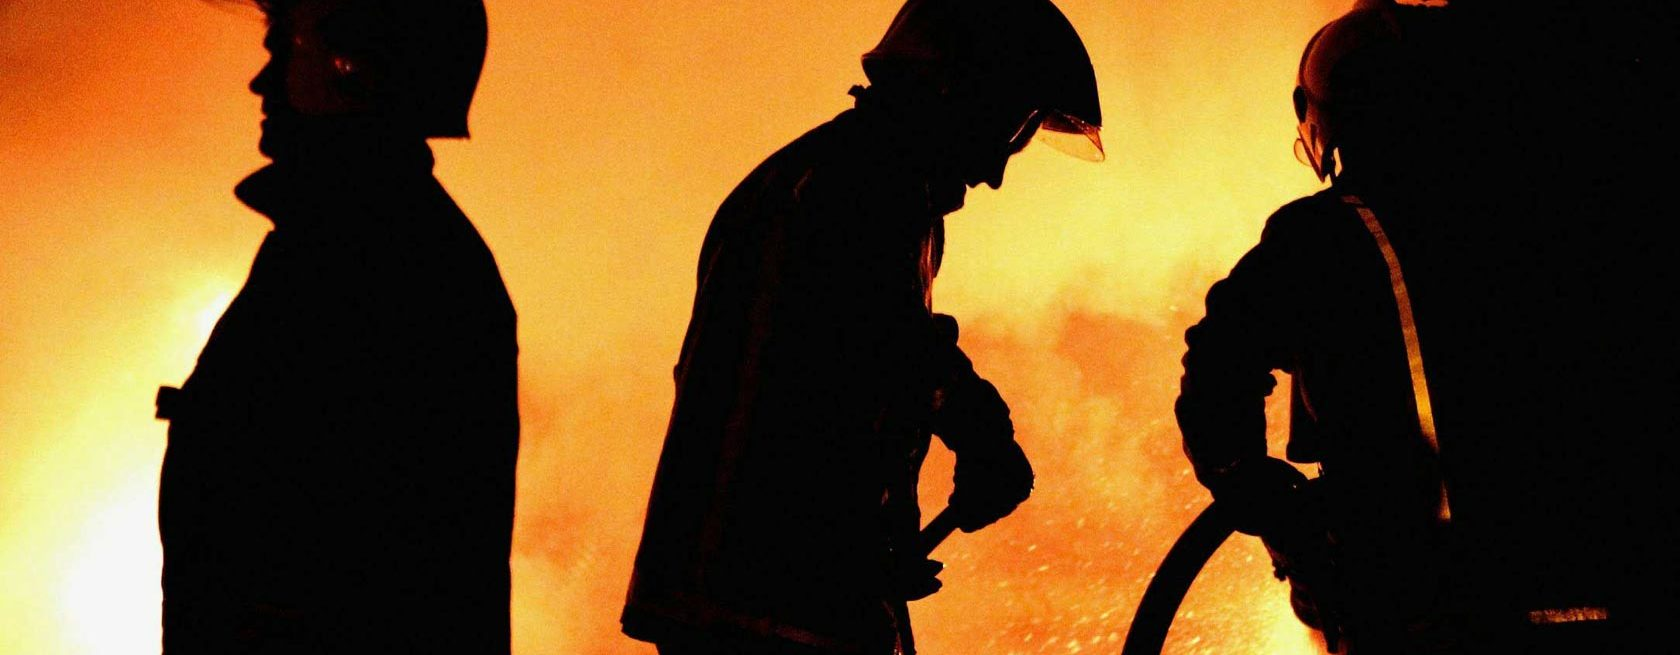 Who Requires The Fire Safety in the Workplace Awareness Course